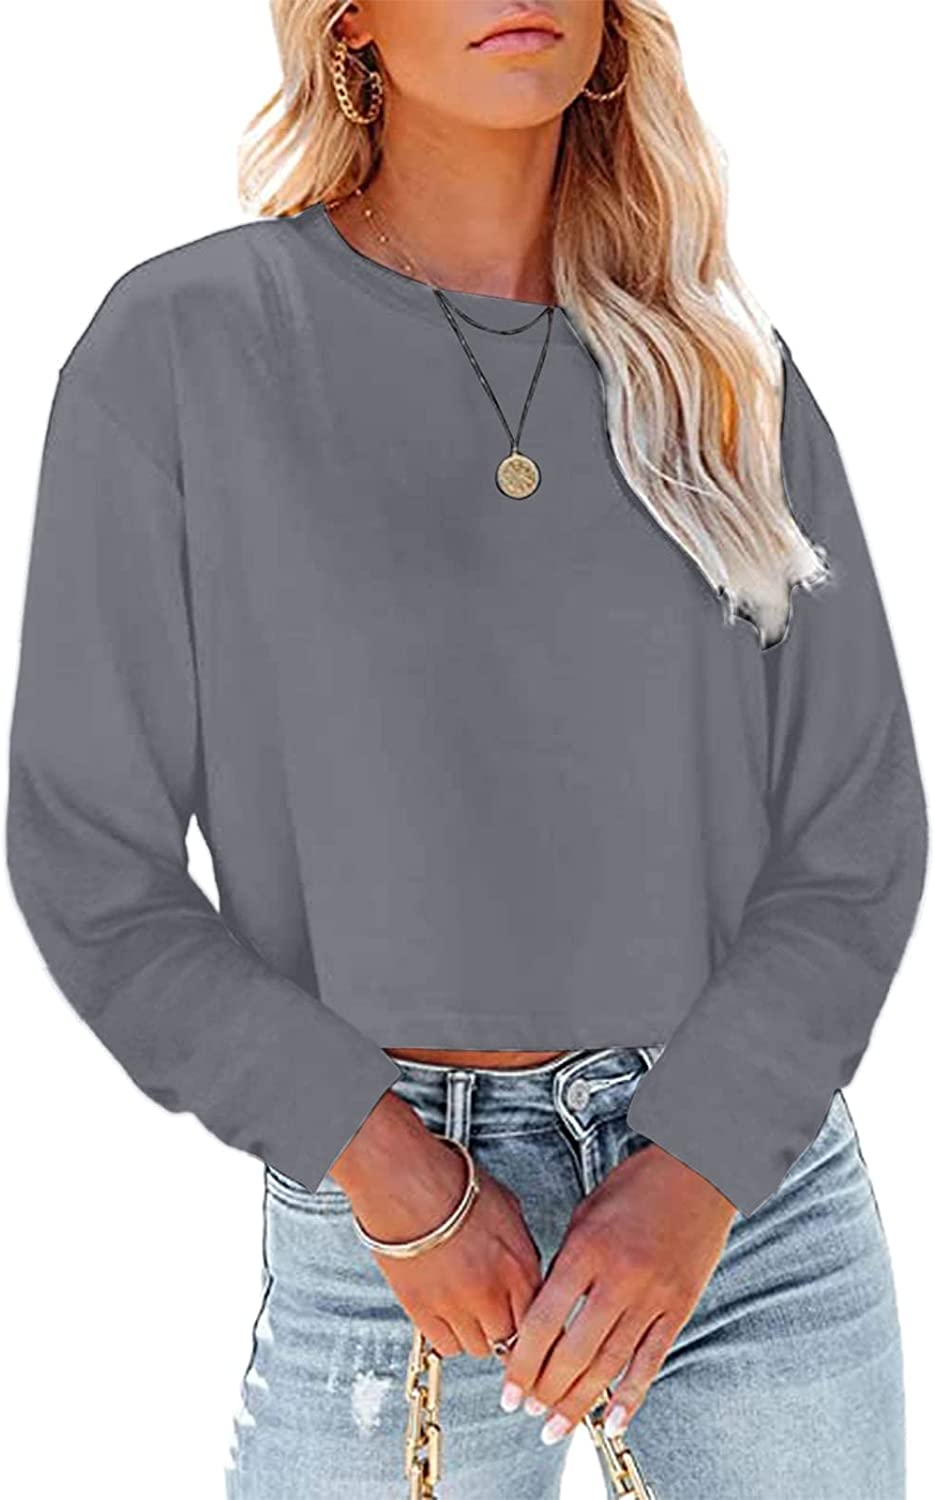 JWIN Women's Solid Color Stripped Round Neck Casual Pullover Long-Sleeved T-Shirt Stretchy Casual Plus Size Crop Sweatshirt Gray